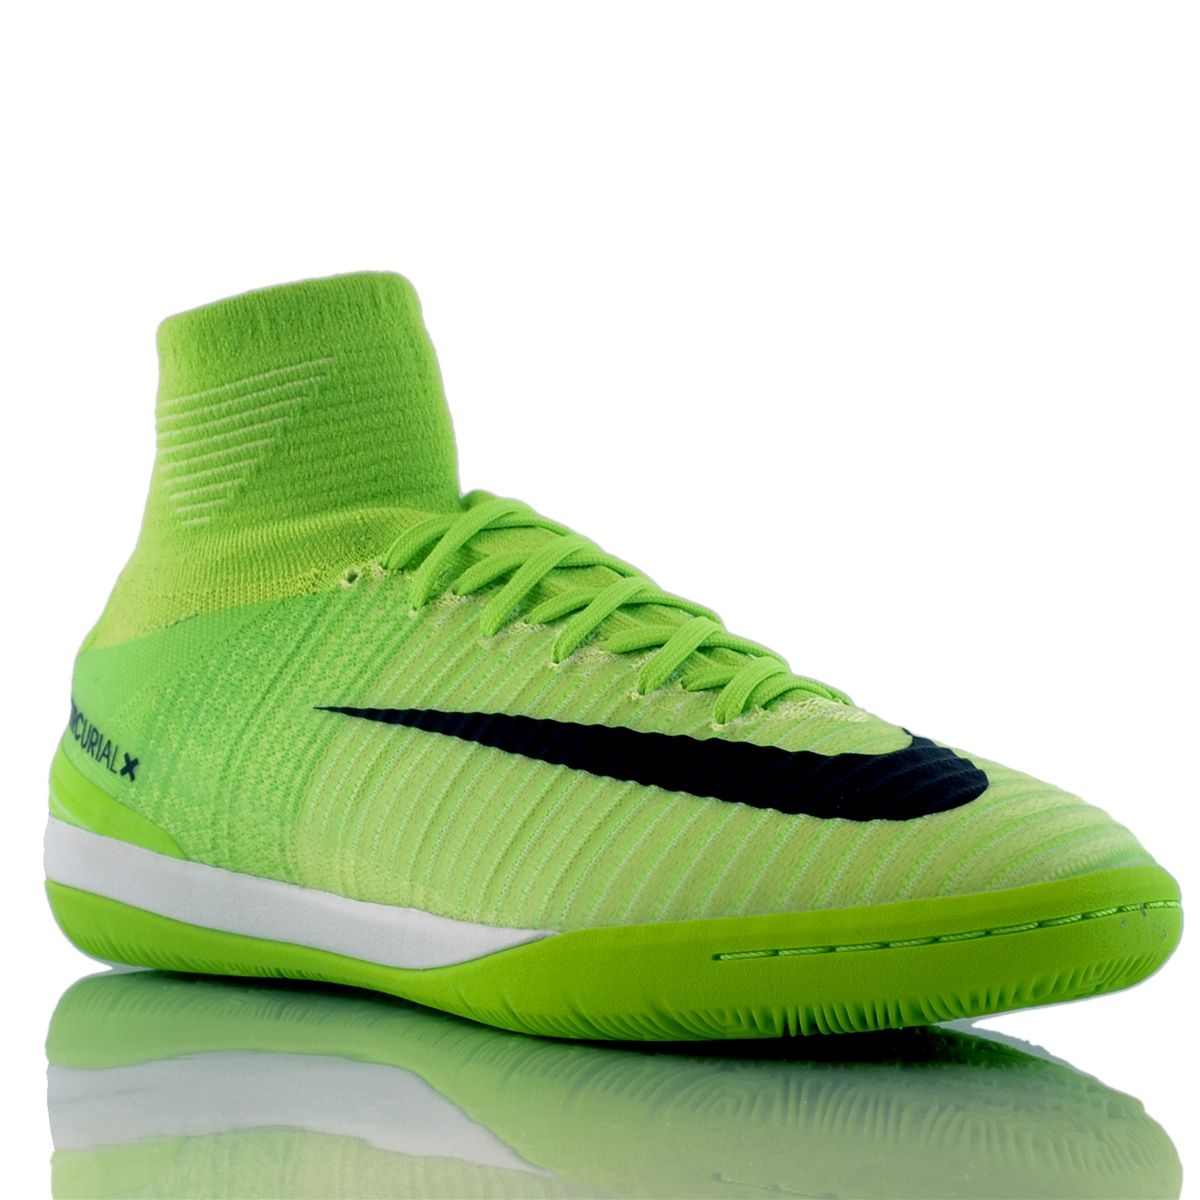 Nike MercurialX Proximo II DF IC Indoor Soccer Shoes ...